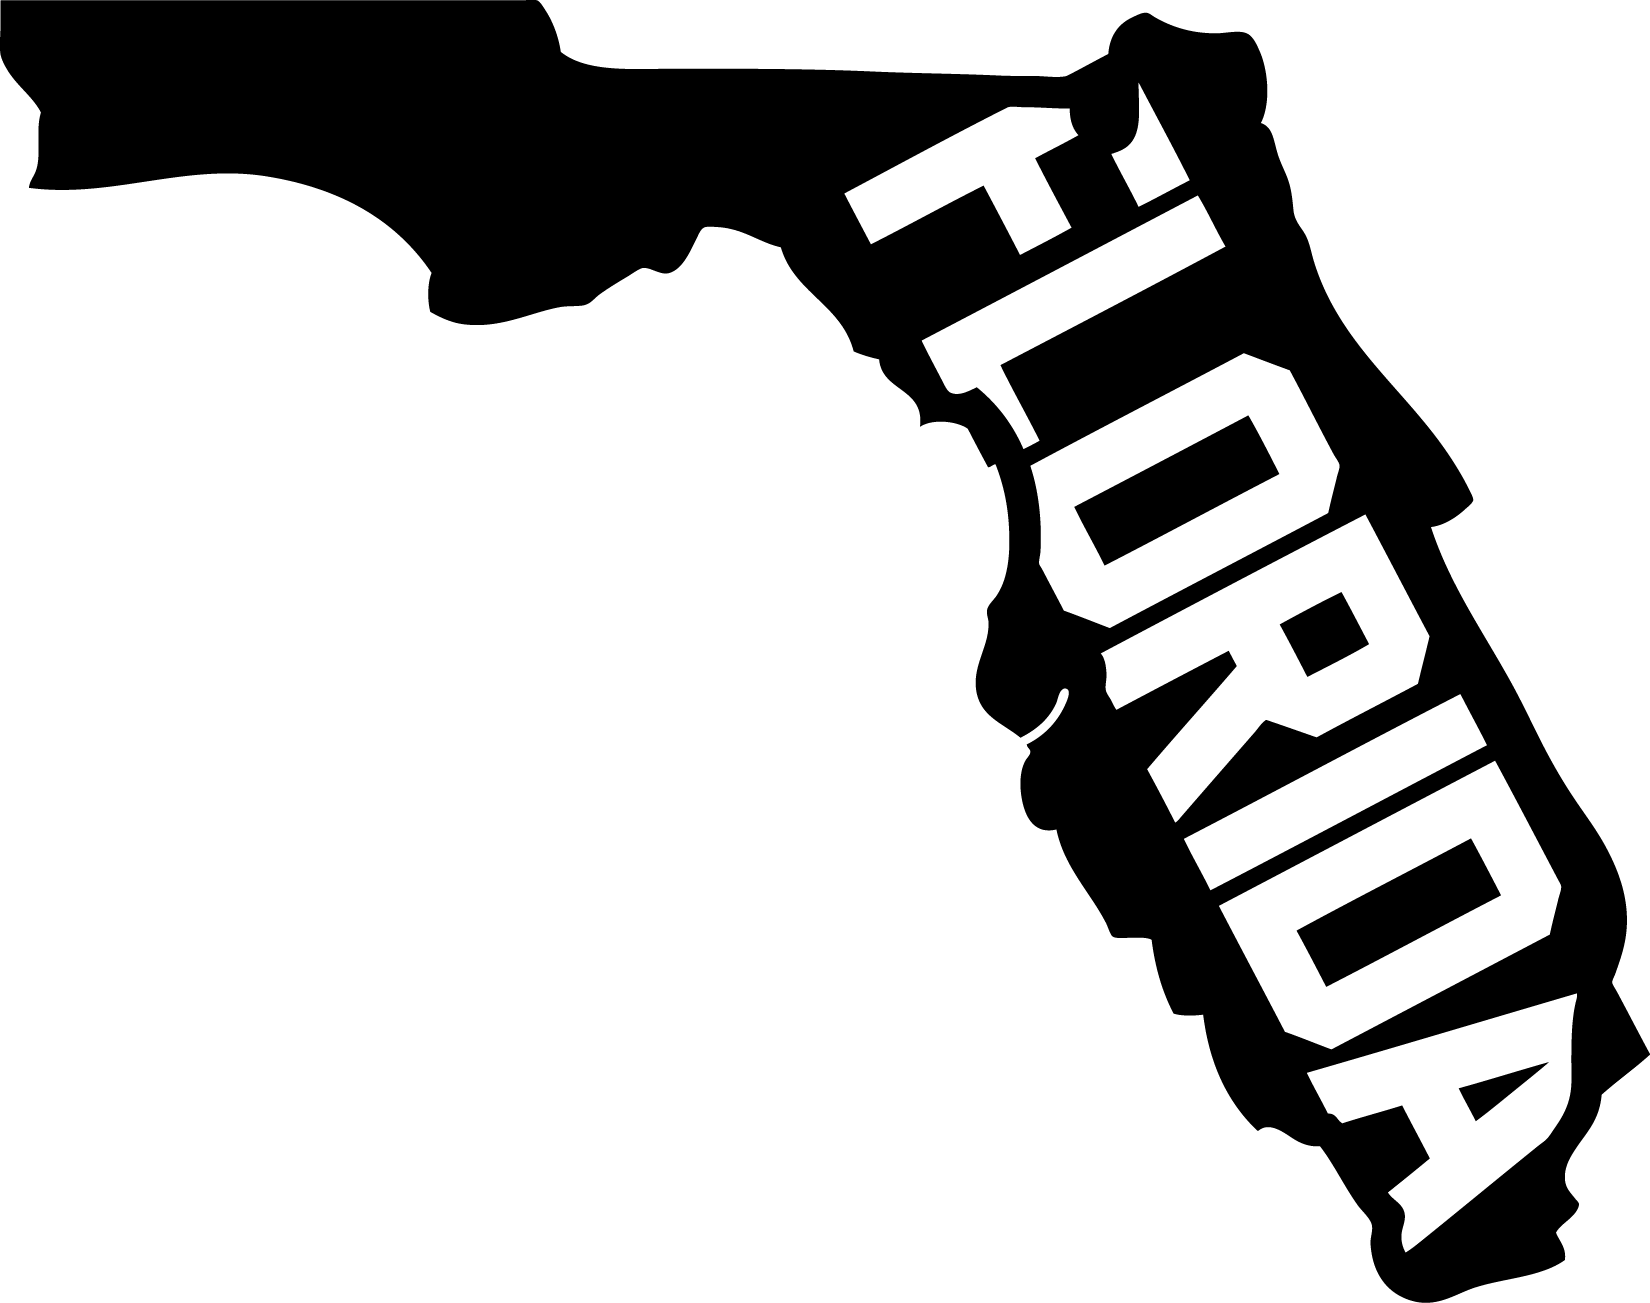 collection of state. Florida clipart black and white